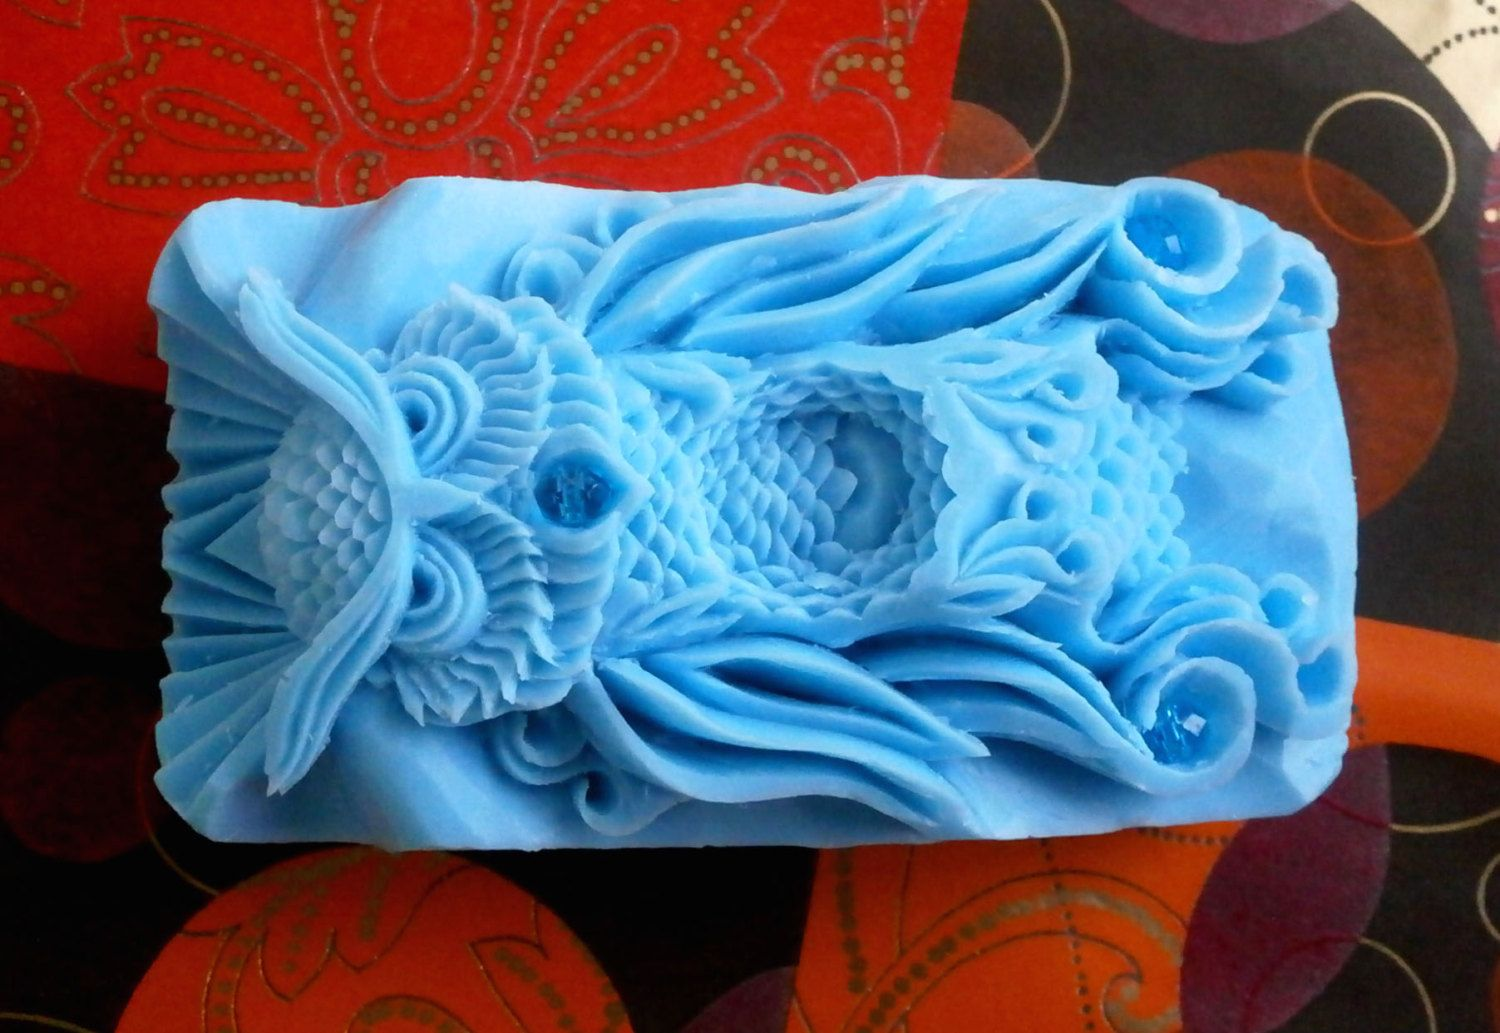 Soap owl sculpture carving bar soap hand carved soap owl carving